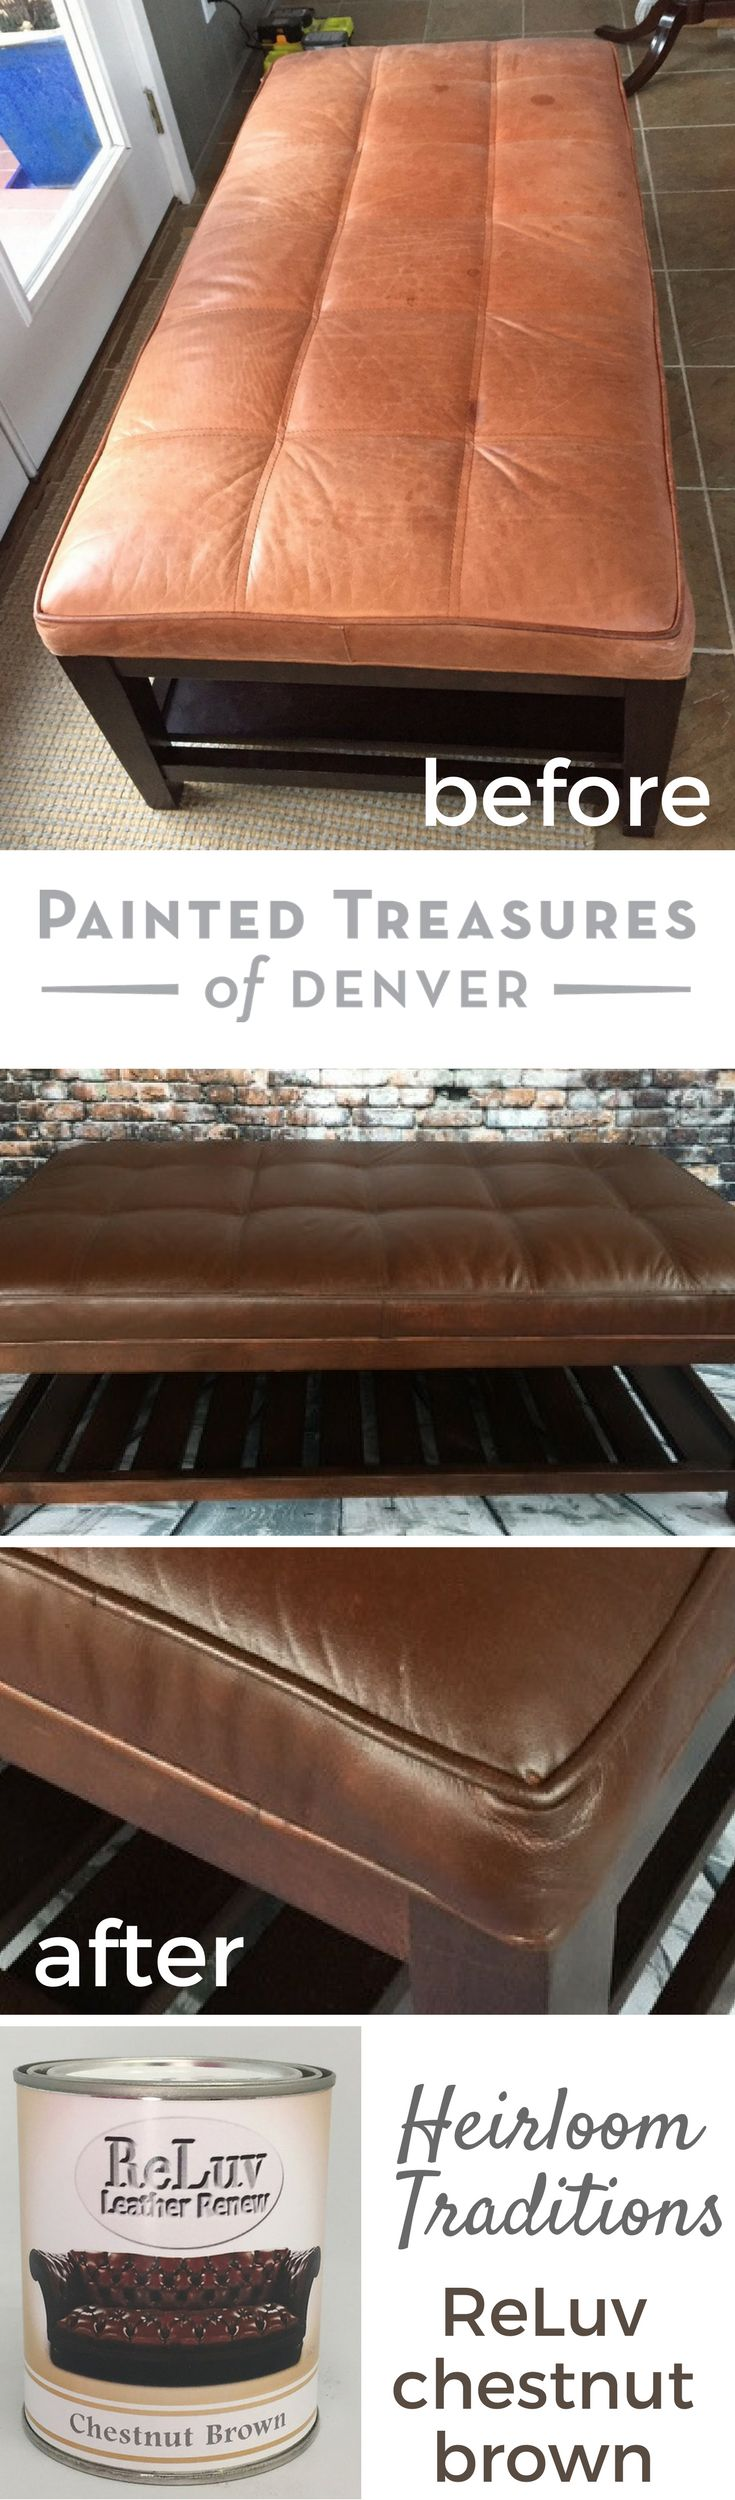 25 best crate and barrel coupon ideas on pinterest used mini this crate and barrel leather ottoman got a makeover using heirloom tradition s reluv in chestnut brown